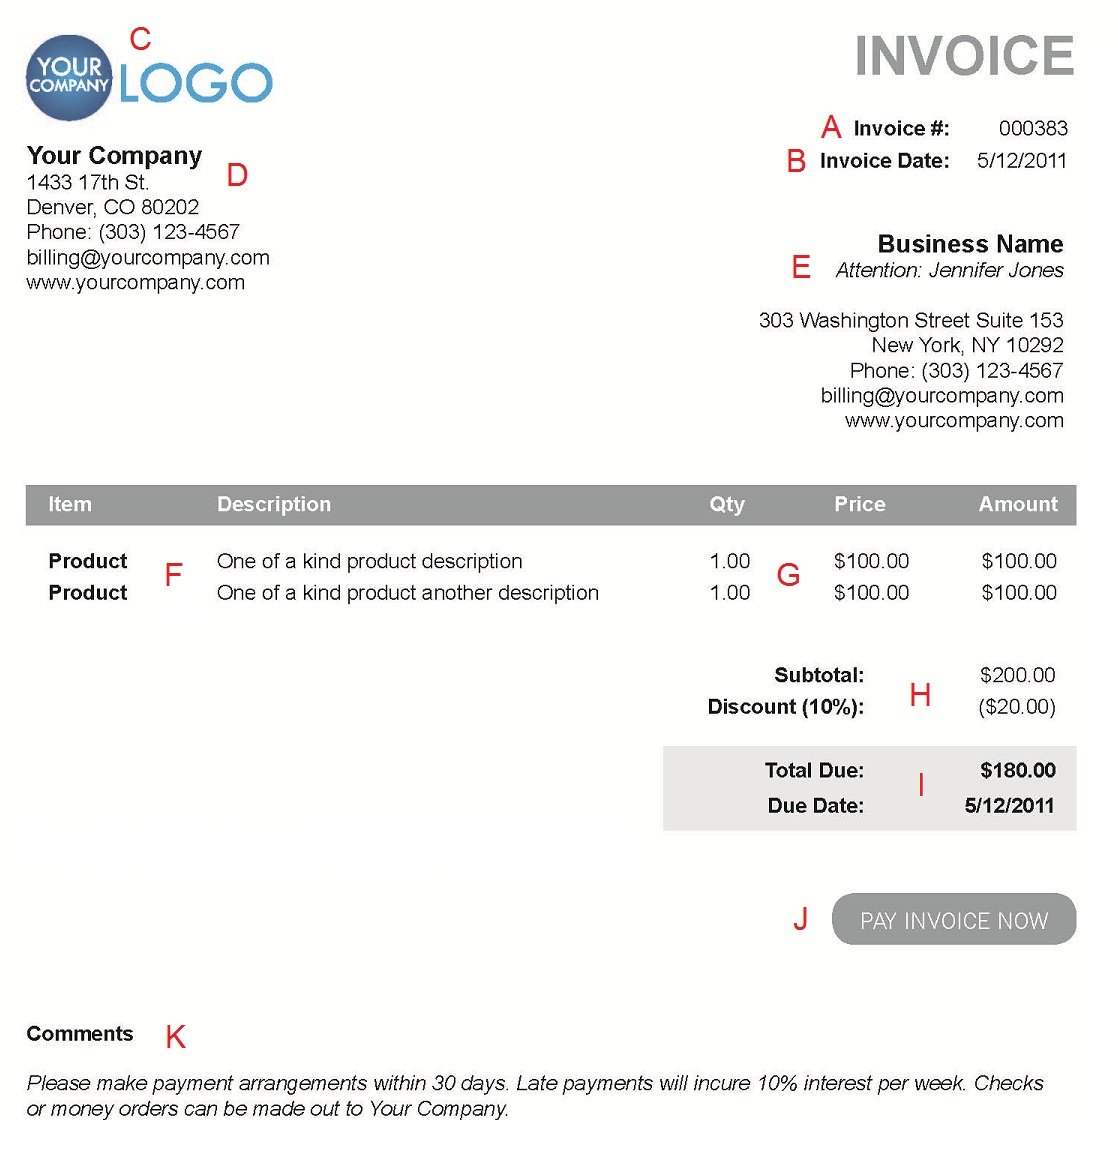 Opposenewapstandardsus  Marvelous The  Different Sections Of An Electronic Payment Invoice With Exquisite A  With Agreeable Receipt Software Also Hertz Rental Receipt In Addition Can I Return Something To Walmart Without A Receipt And Return Receipt Usps As Well As Jackson County Property Tax Receipt Additionally Print Receipt From Paysimplecom With Opposenewapstandardsus  Exquisite The  Different Sections Of An Electronic Payment Invoice With Agreeable A  And Marvelous Receipt Software Also Hertz Rental Receipt In Addition Can I Return Something To Walmart Without A Receipt From Paysimplecom